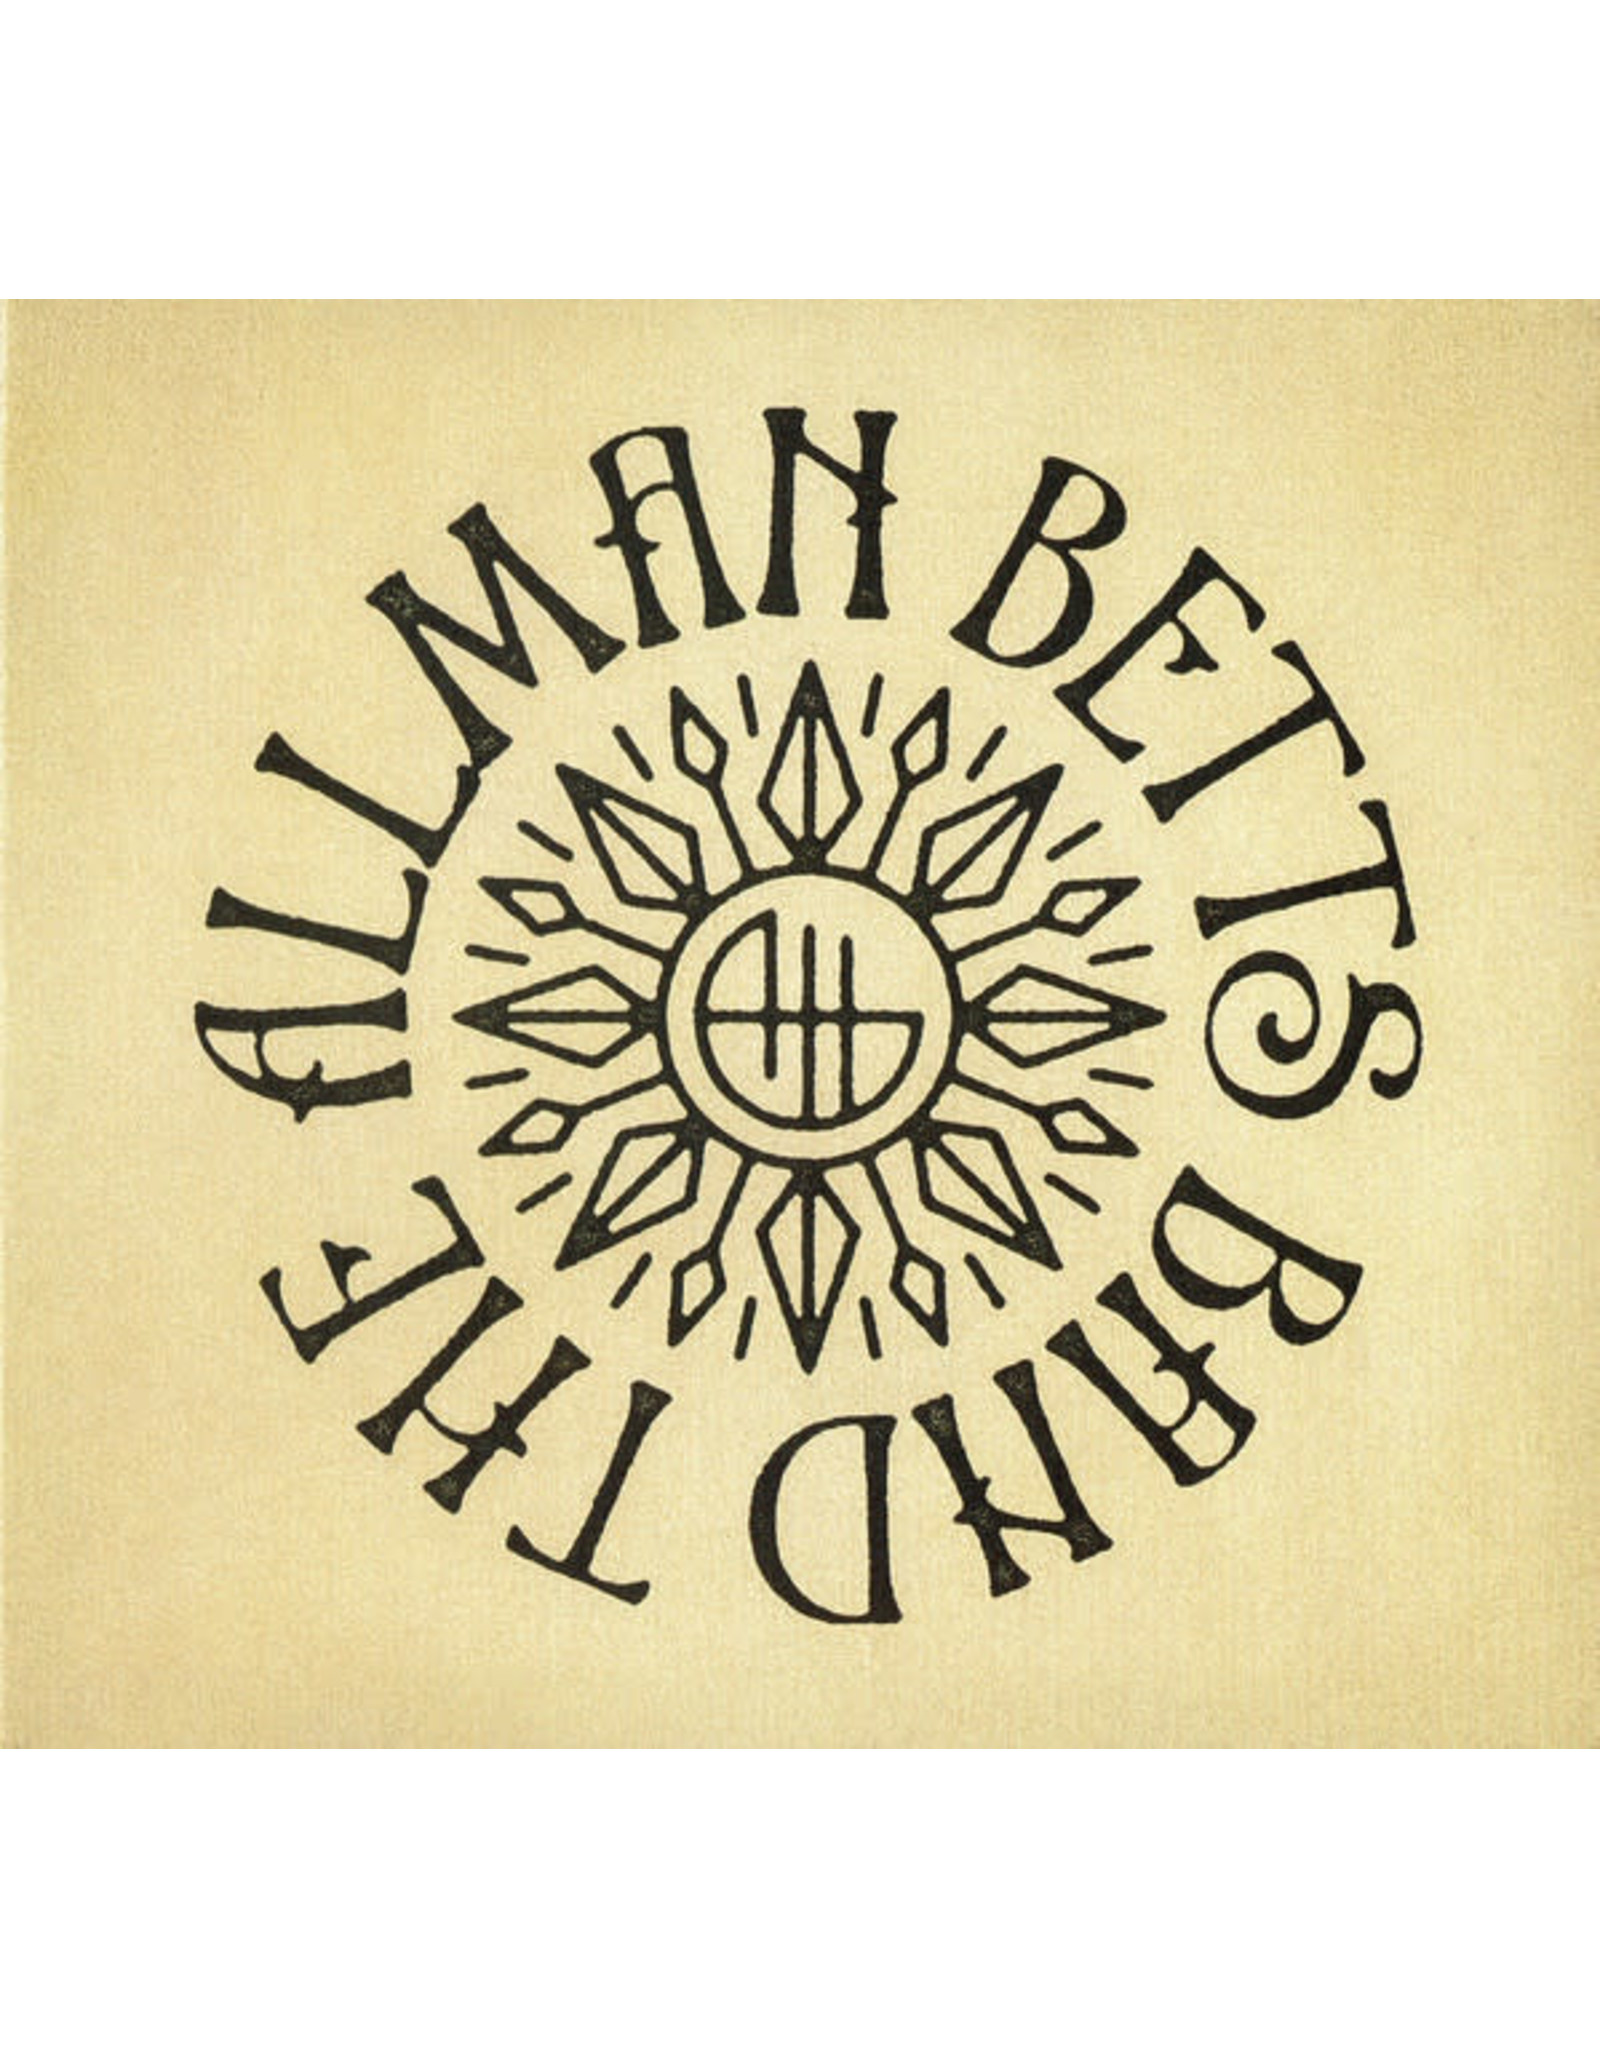 Allman Betts Band / Down To The River